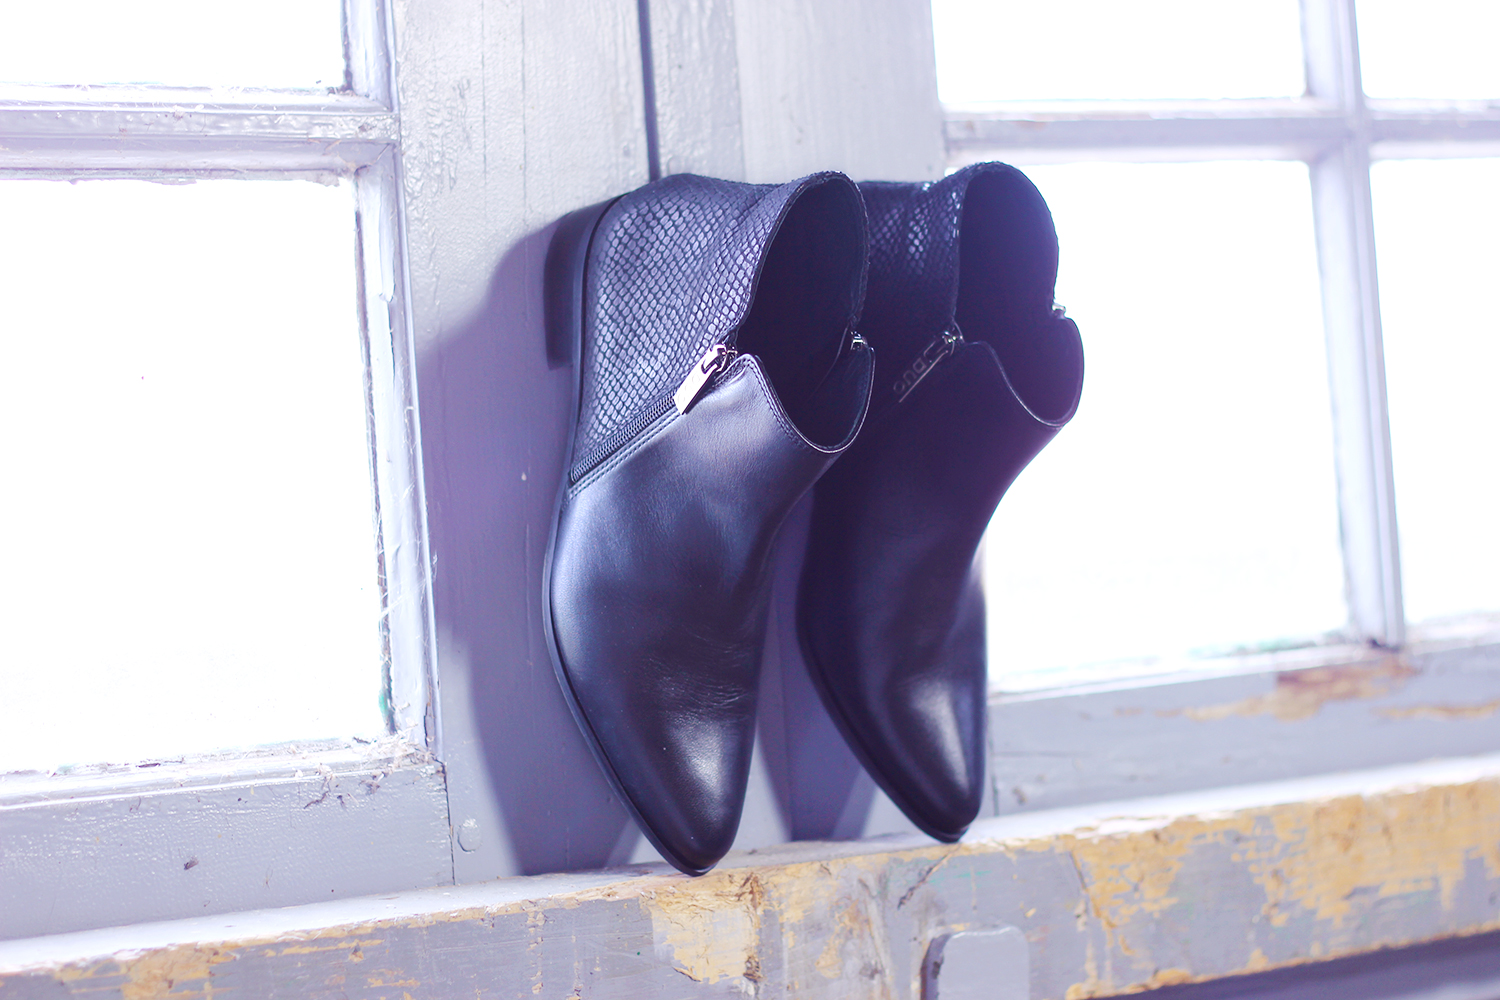 DUO boots enkellaarsjes AXIL op maar Brits review outfit lifestyle by linda mode fashion